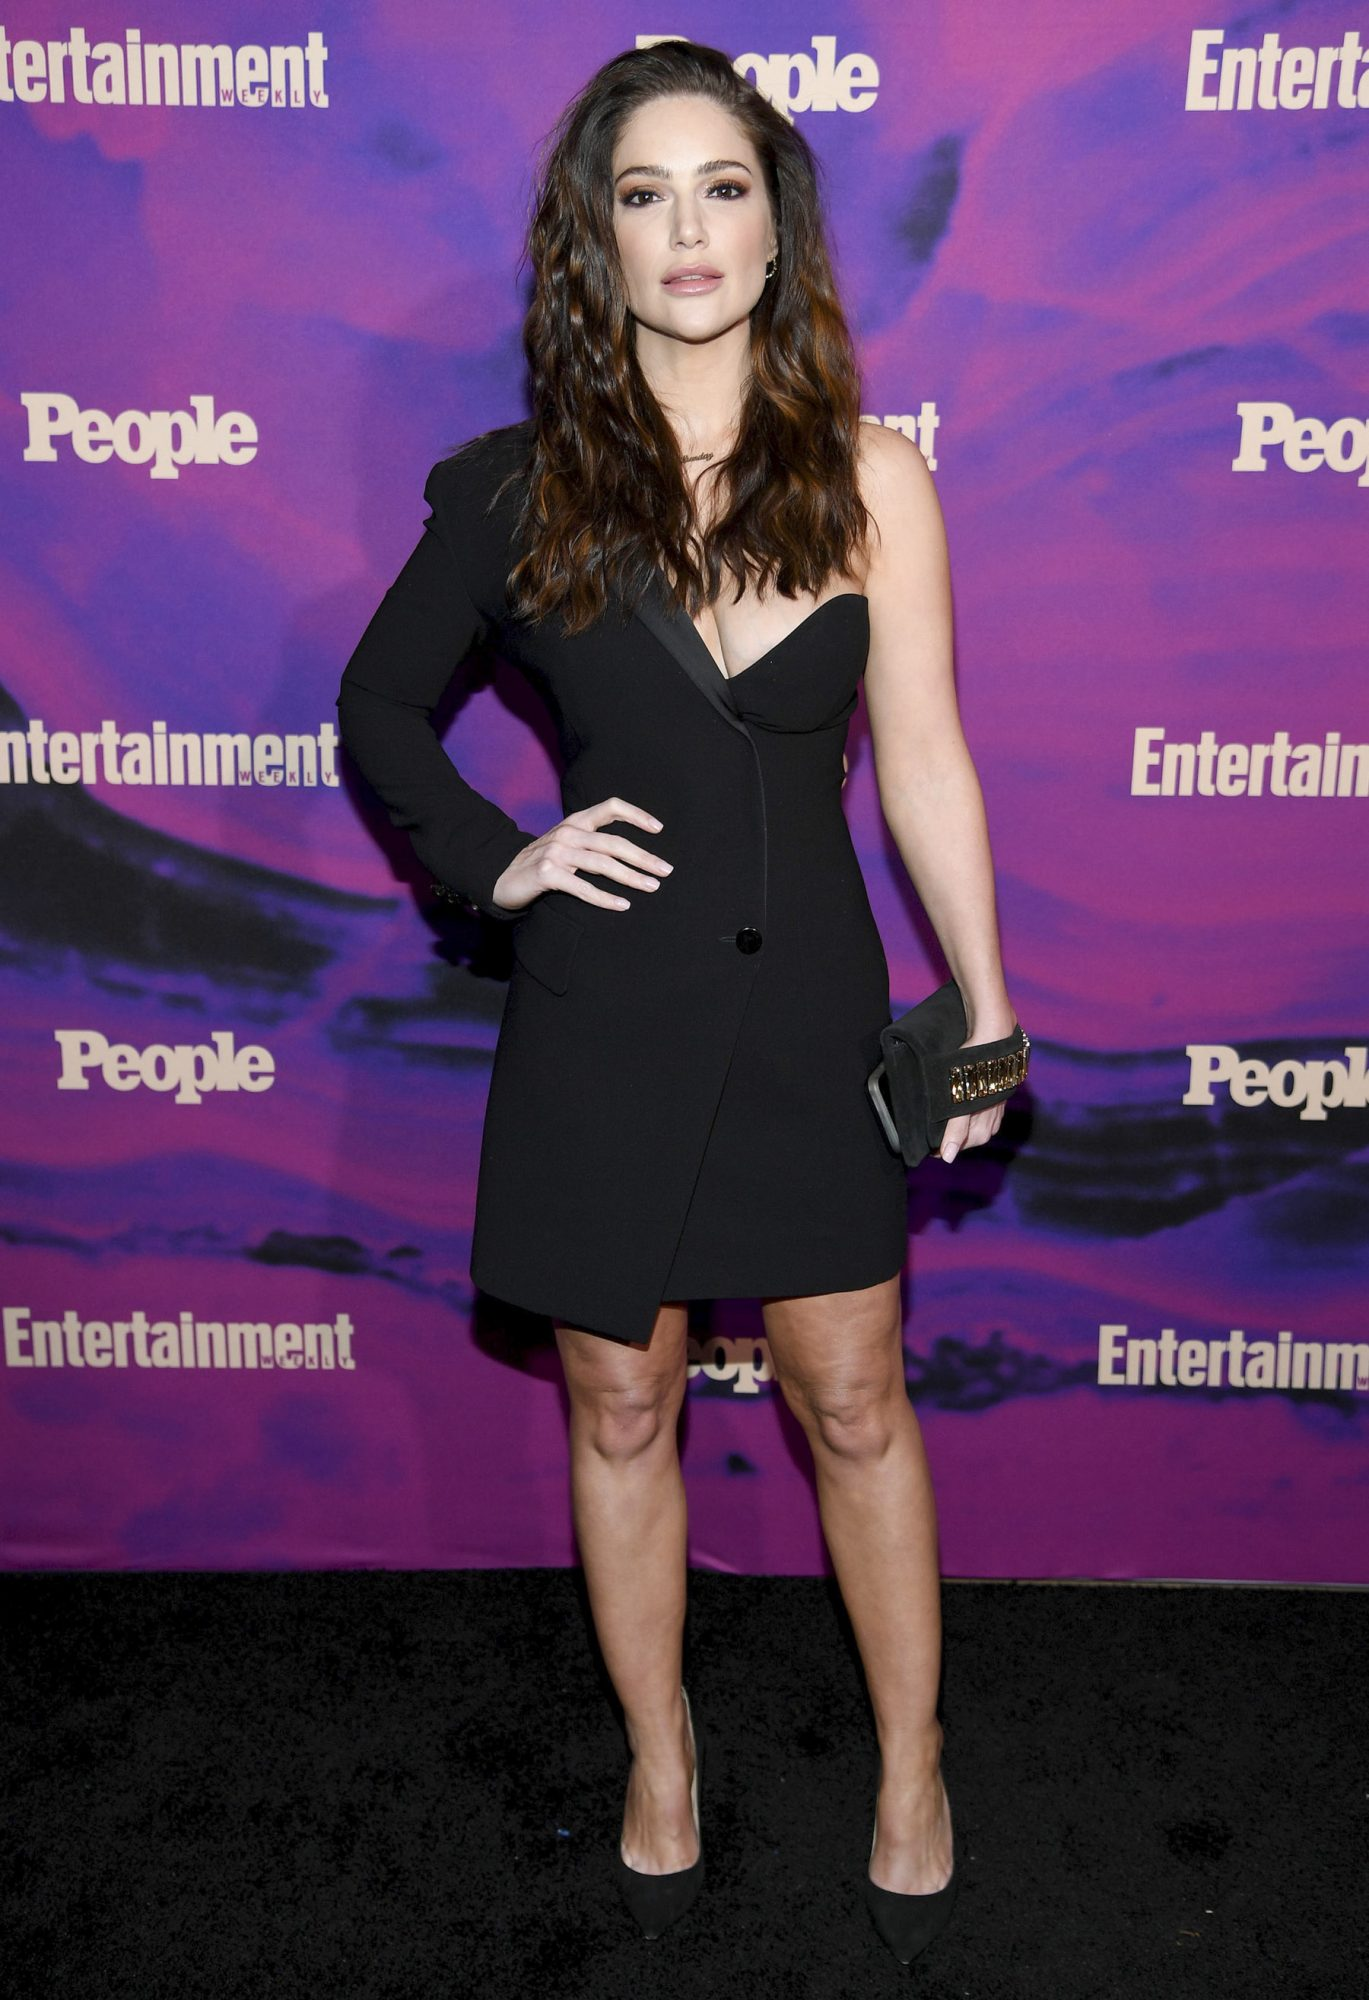 NEW YORK, NEW YORK - MAY 13: Janet Montgomery attends the Entertainment Weekly & PEOPLE New York Upfronts Party on May 13, 2019 in New York City. (Photo by Dimitrios Kambouris/Getty Images for Entertainment Weekly & PEOPLE)